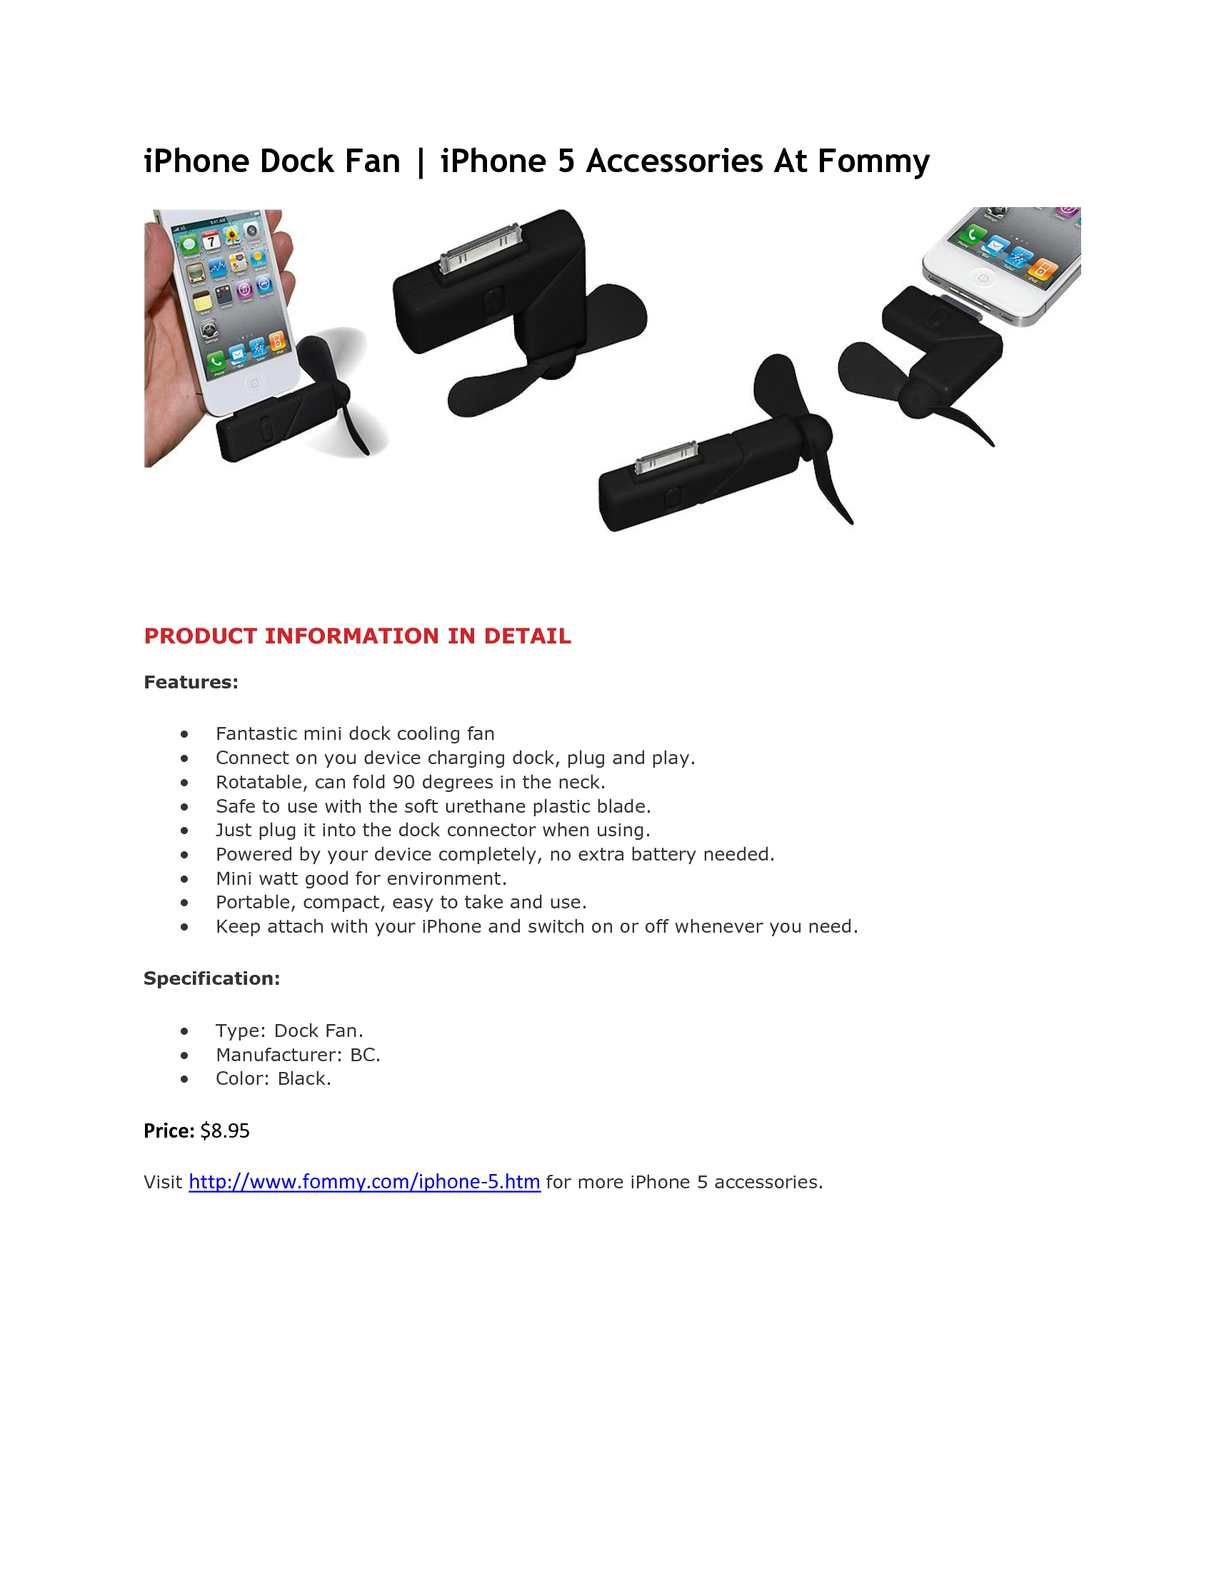 Calamo Iphone Dock Fan 5 Accessories At Fommy Cord Wiring Diagram